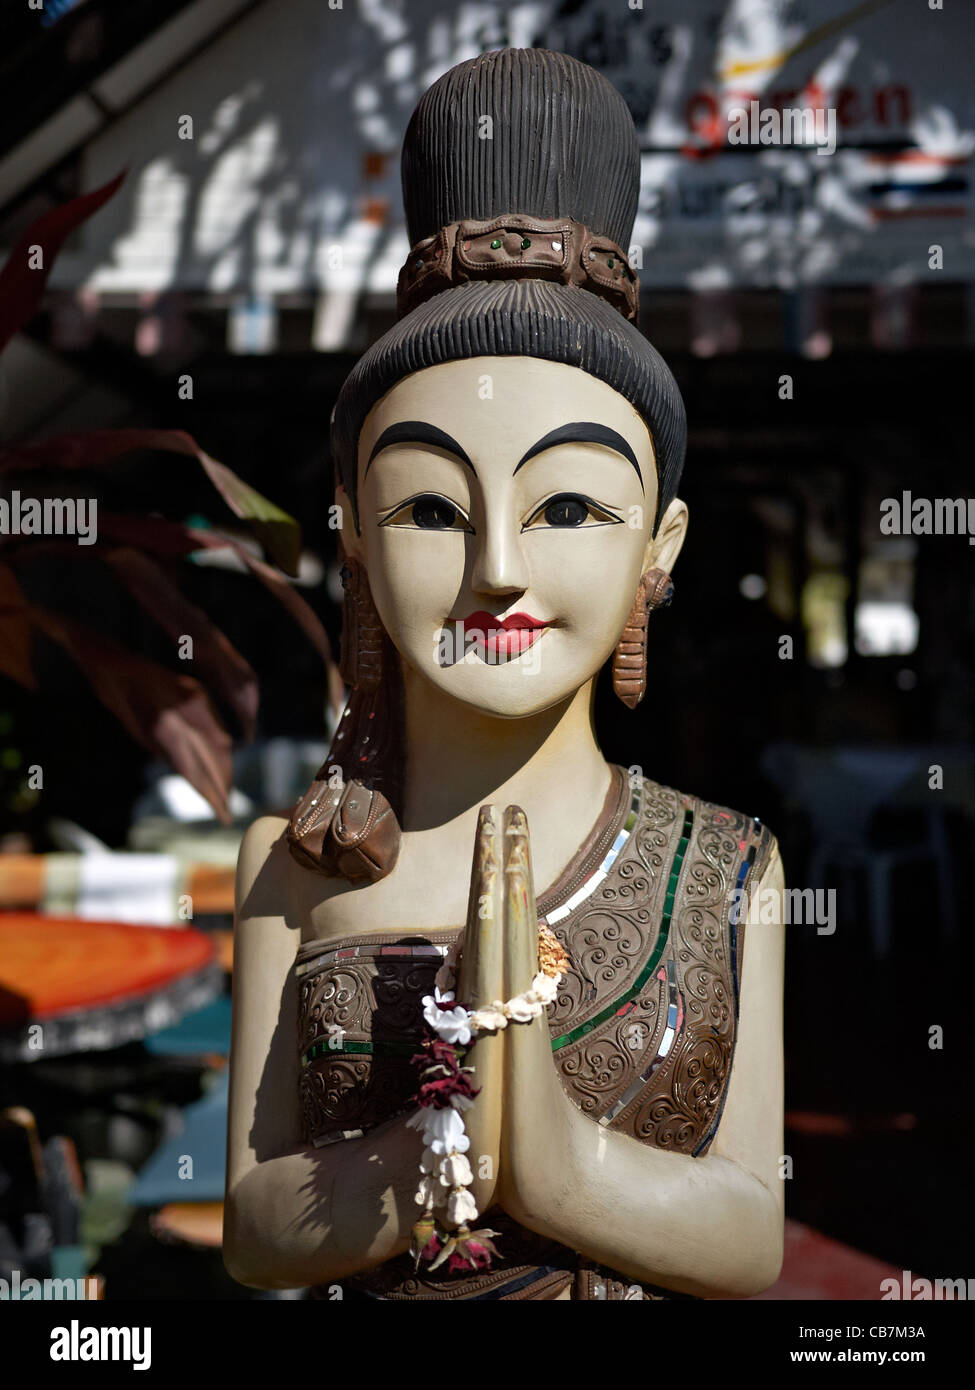 Thai statue carved in the traditional Thailand greeting known as a Wai. - Stock Image